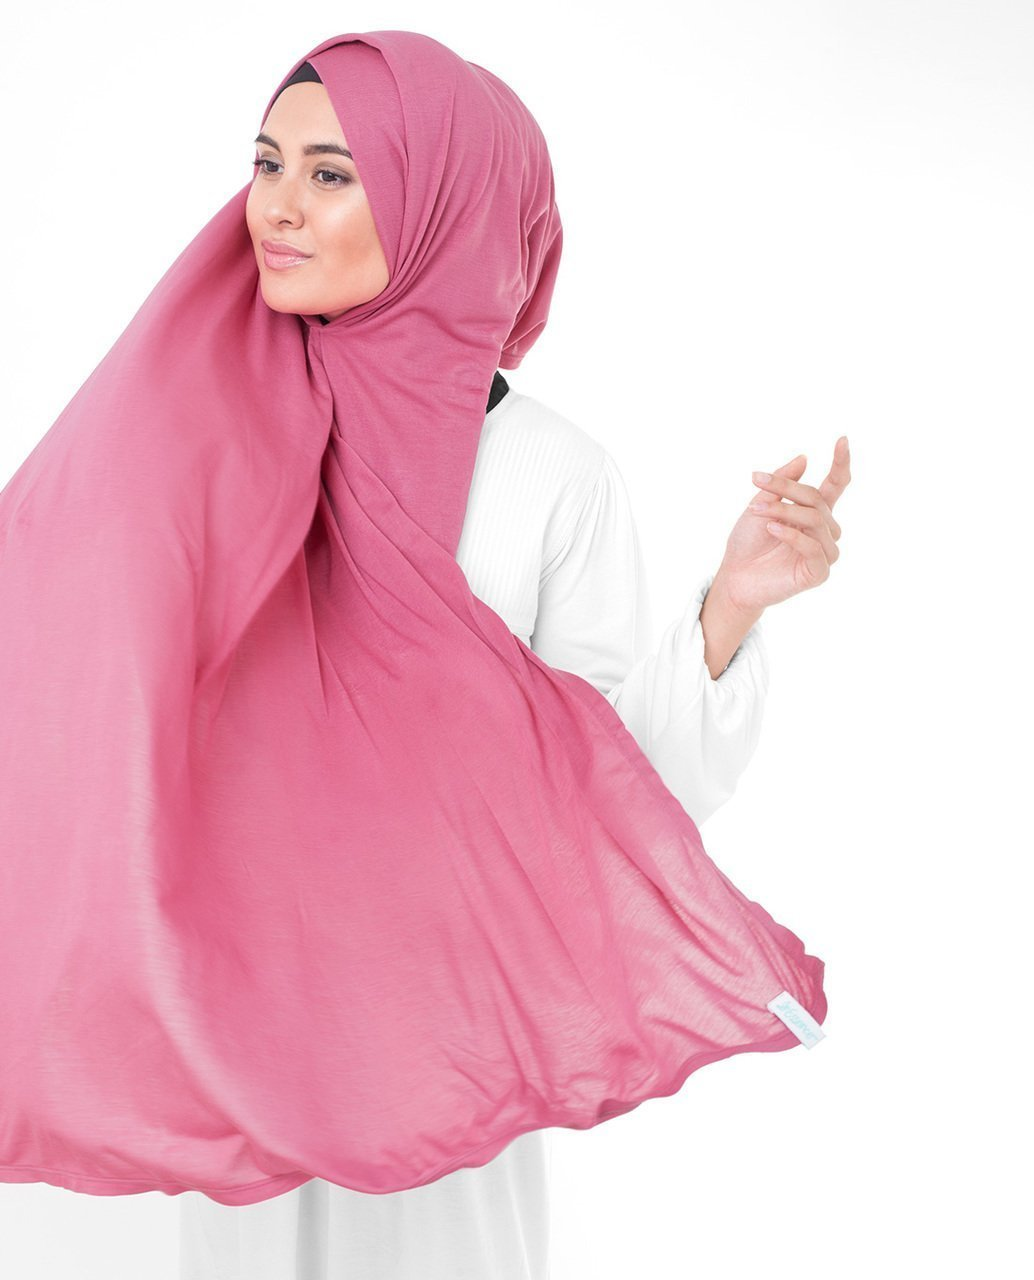 Honeysuckle Pink Viscose Jersey Hijab Medium Honeysuckle Pink